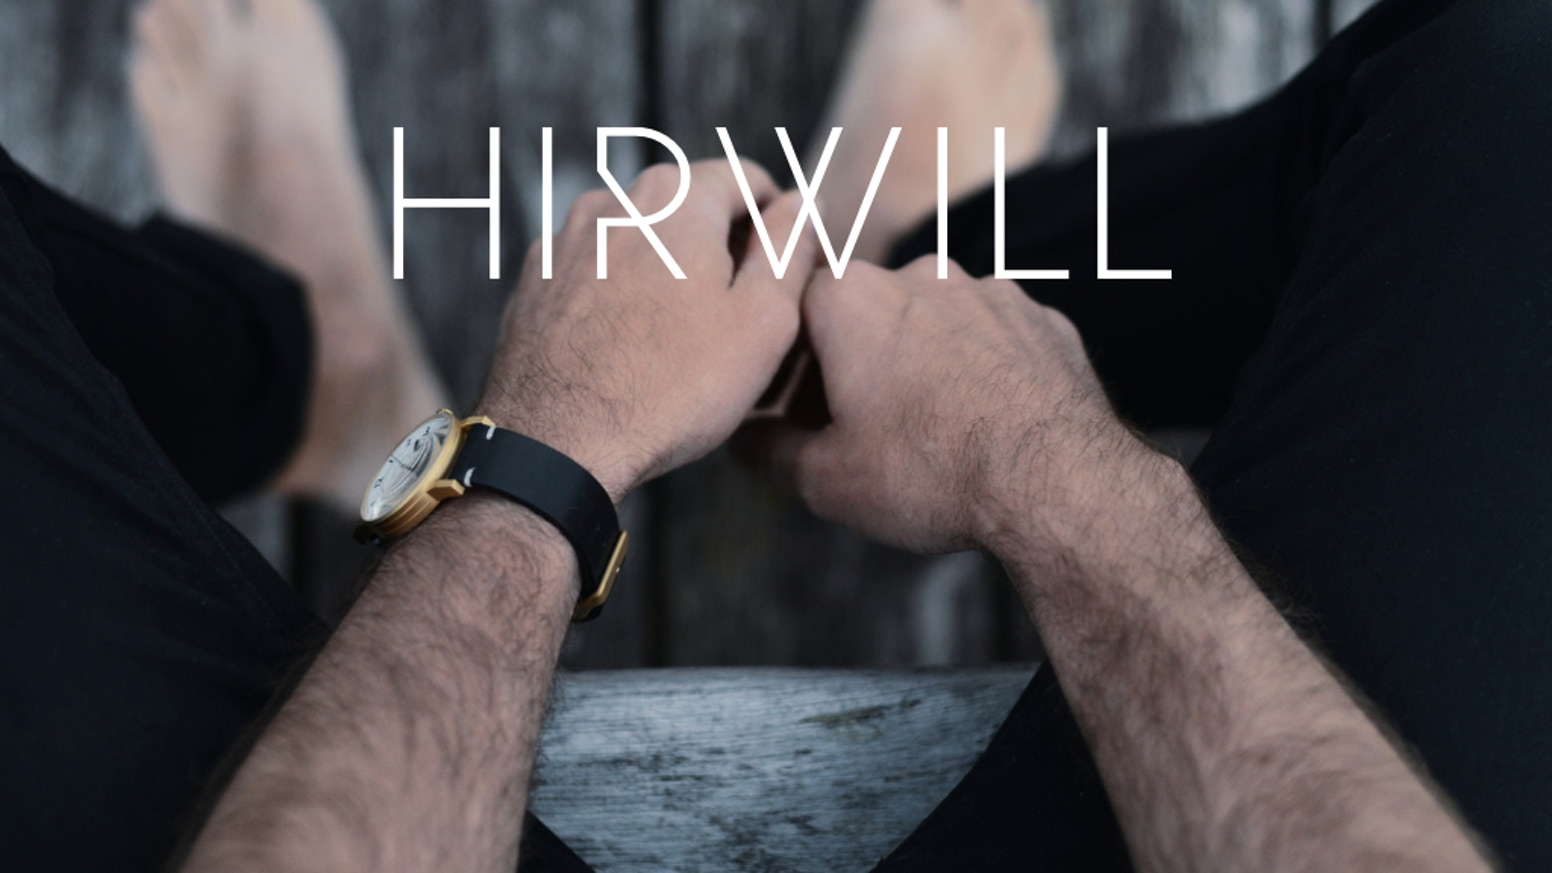 Hirwill is a Swedish micro watch brand that is dedicated to deliver high quality watches with inspiration from nature.